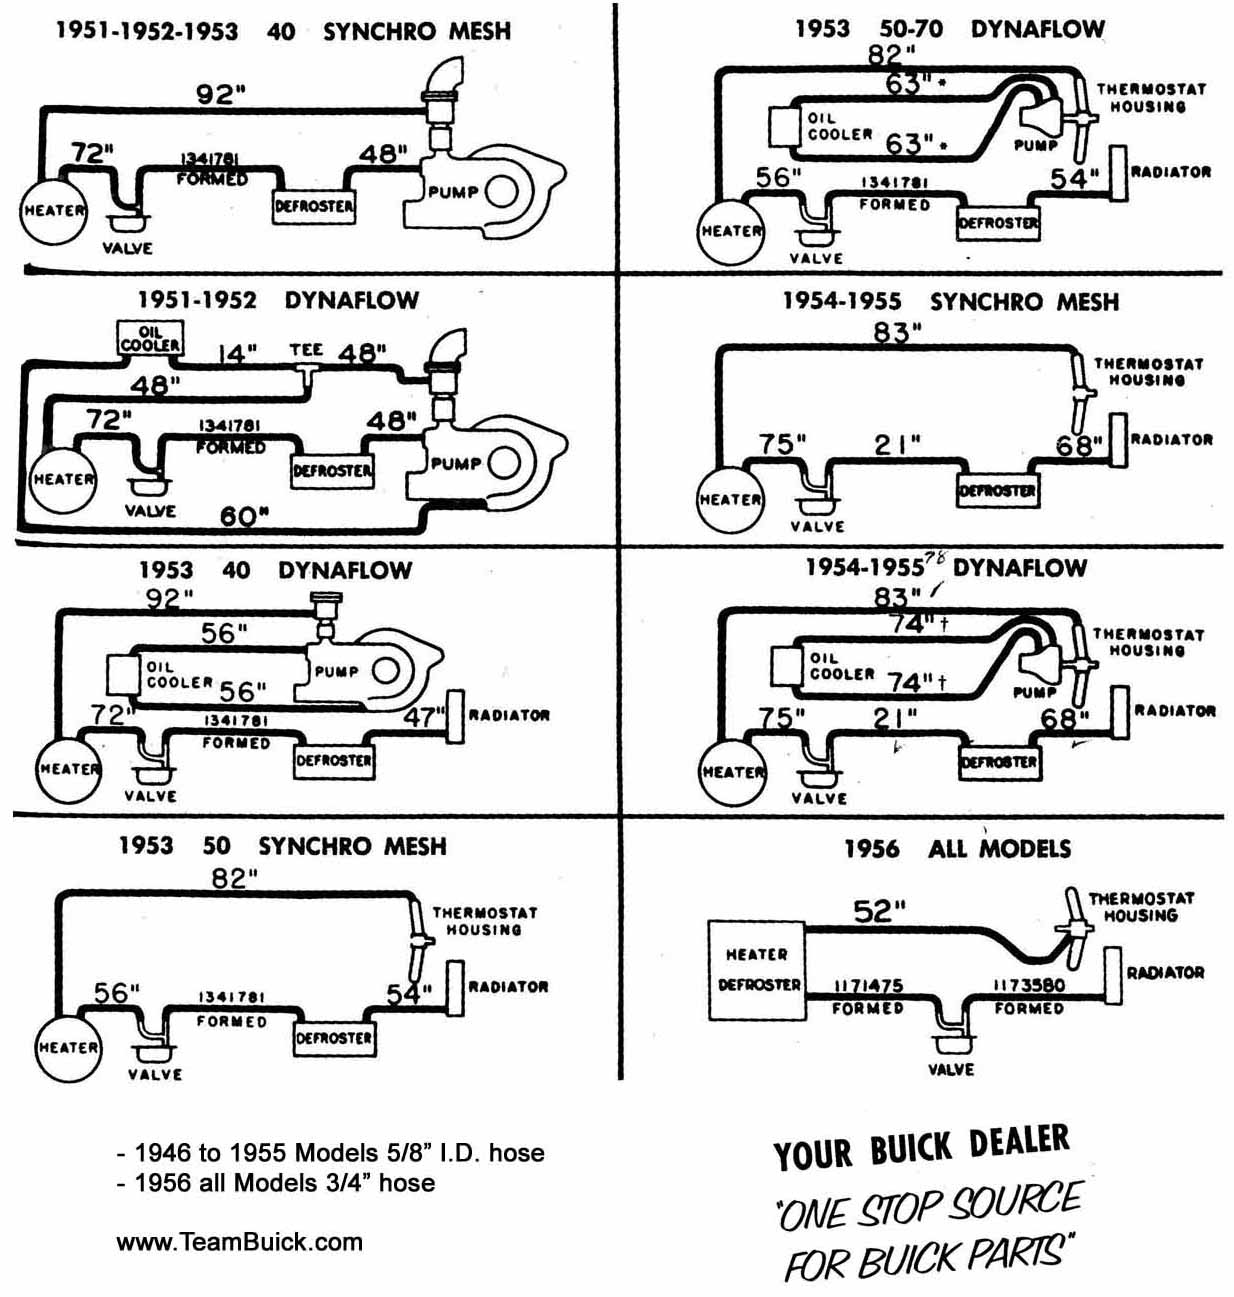 1964 Plymouth Valiant 3 7 Engine Diagram in addition 1956 Buick Special Wiring Diagram besides 1929 Ford Engine Wiring Diagram as well Trail of tears map furthermore 176836. on 1958 ford straight six wiring diagram